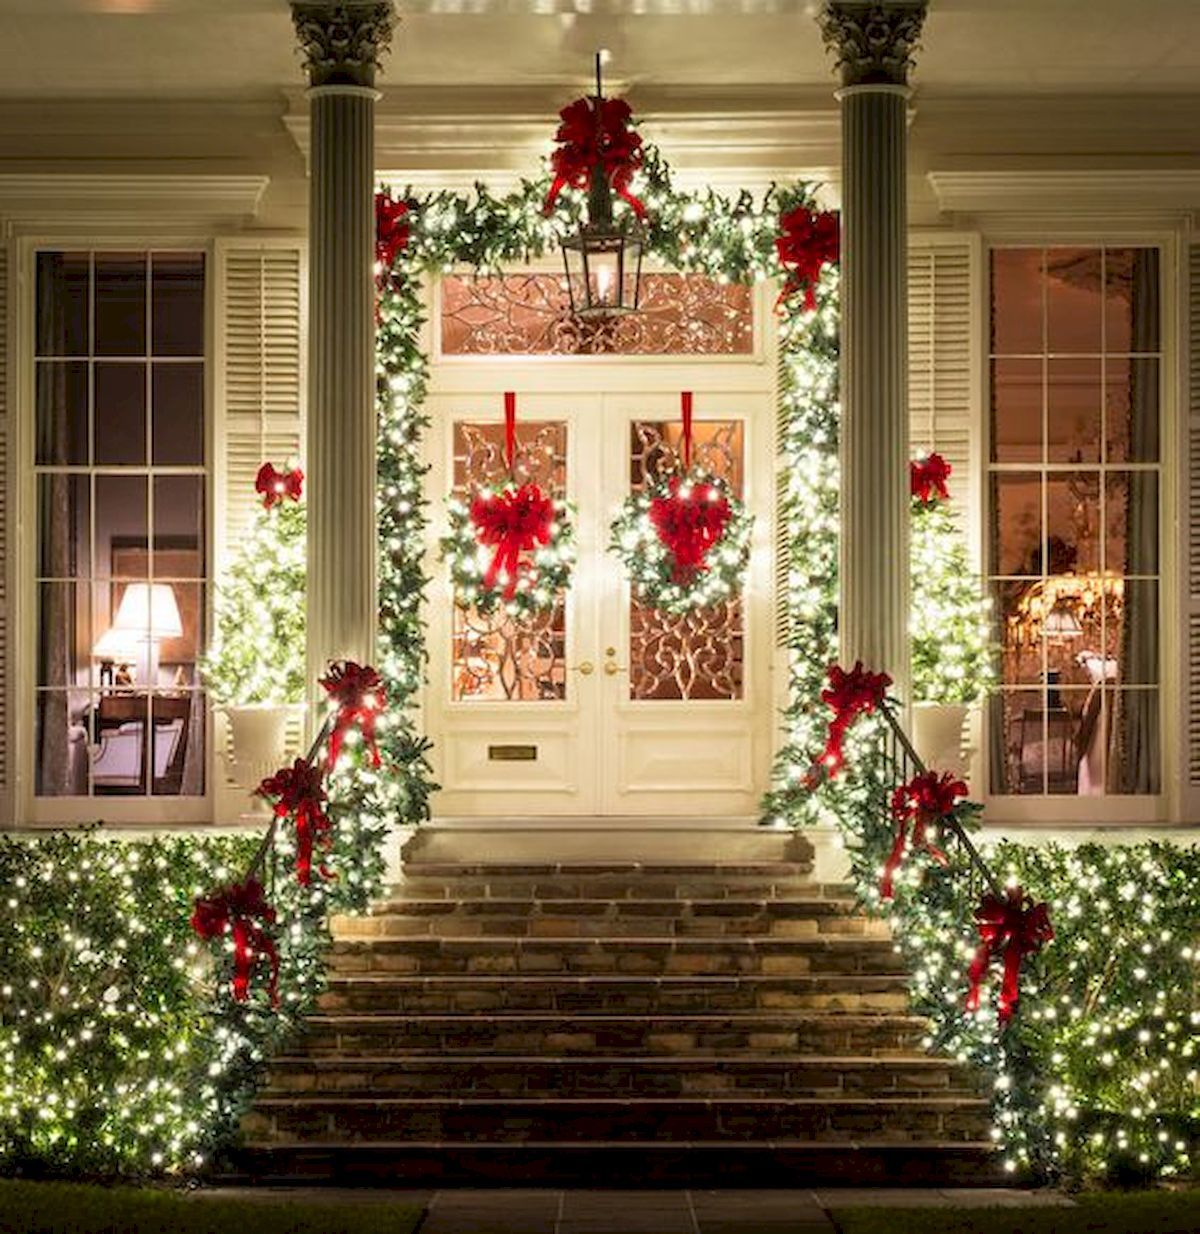 Home Design Ideas For Christmas: 50 Stunning Front Porch Christmas Lights Decorations Ideas